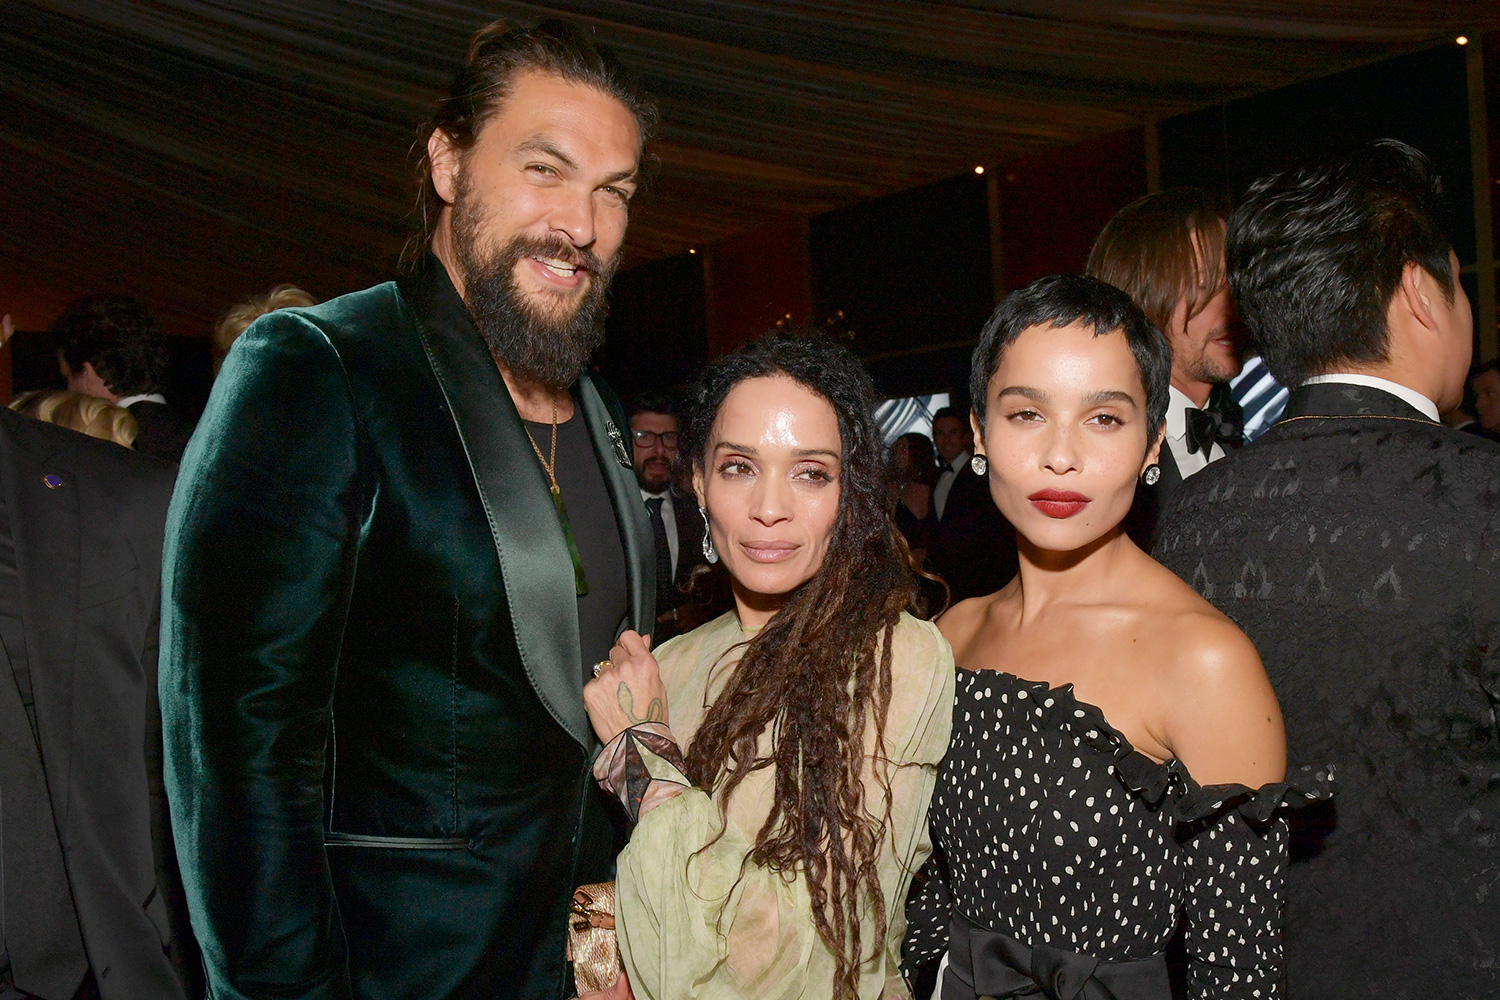 Jason Momoa, Lisa Bonet, and Zoë Kravitz